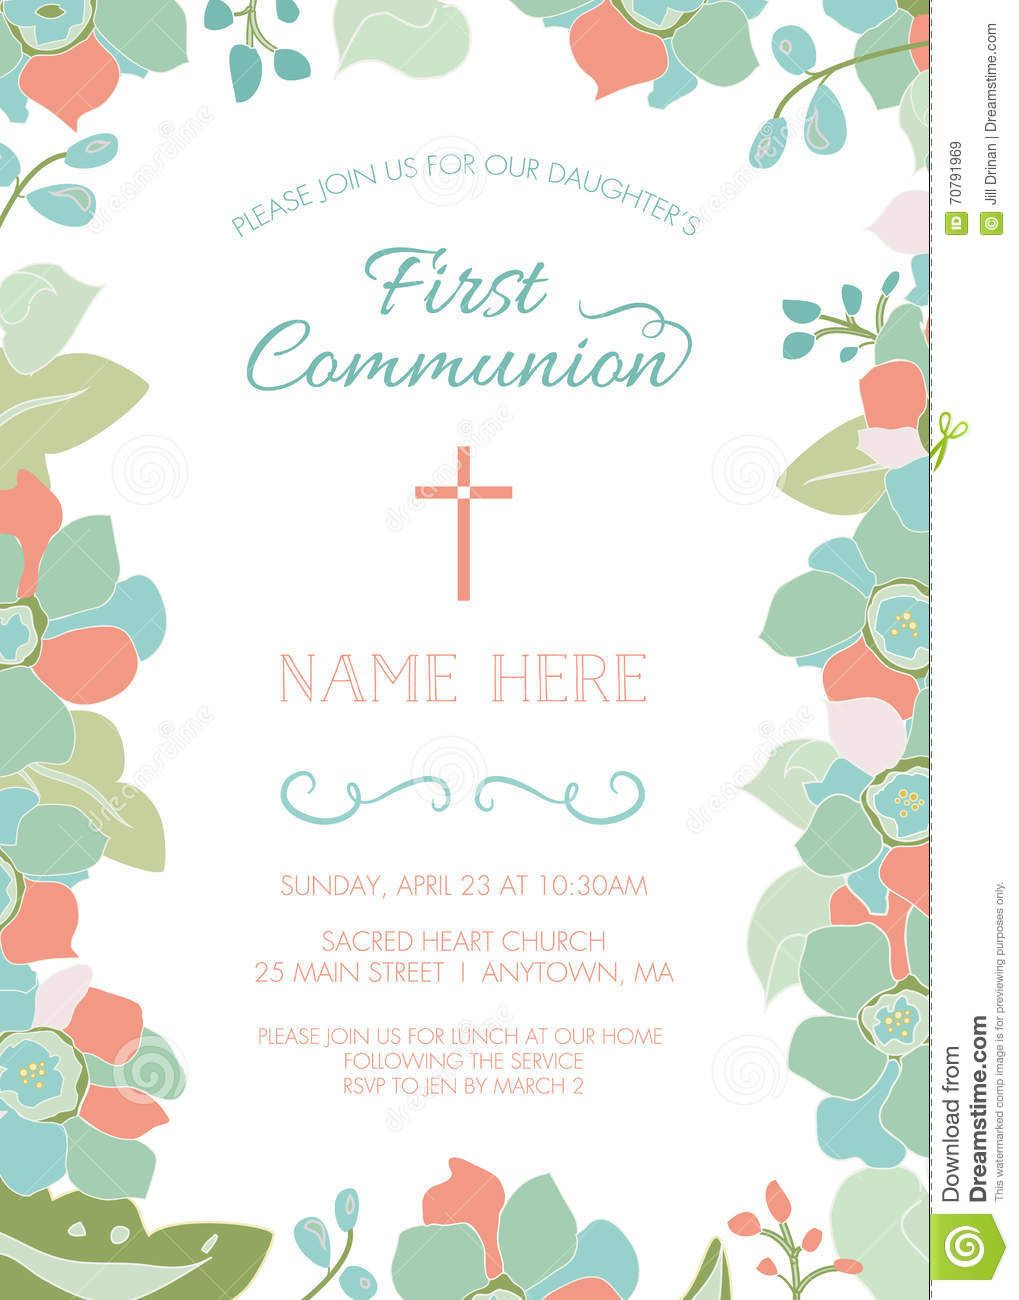 First communion baptism christening invitation template floral first communion baptism christening invitation template floral border stopboris Choice Image